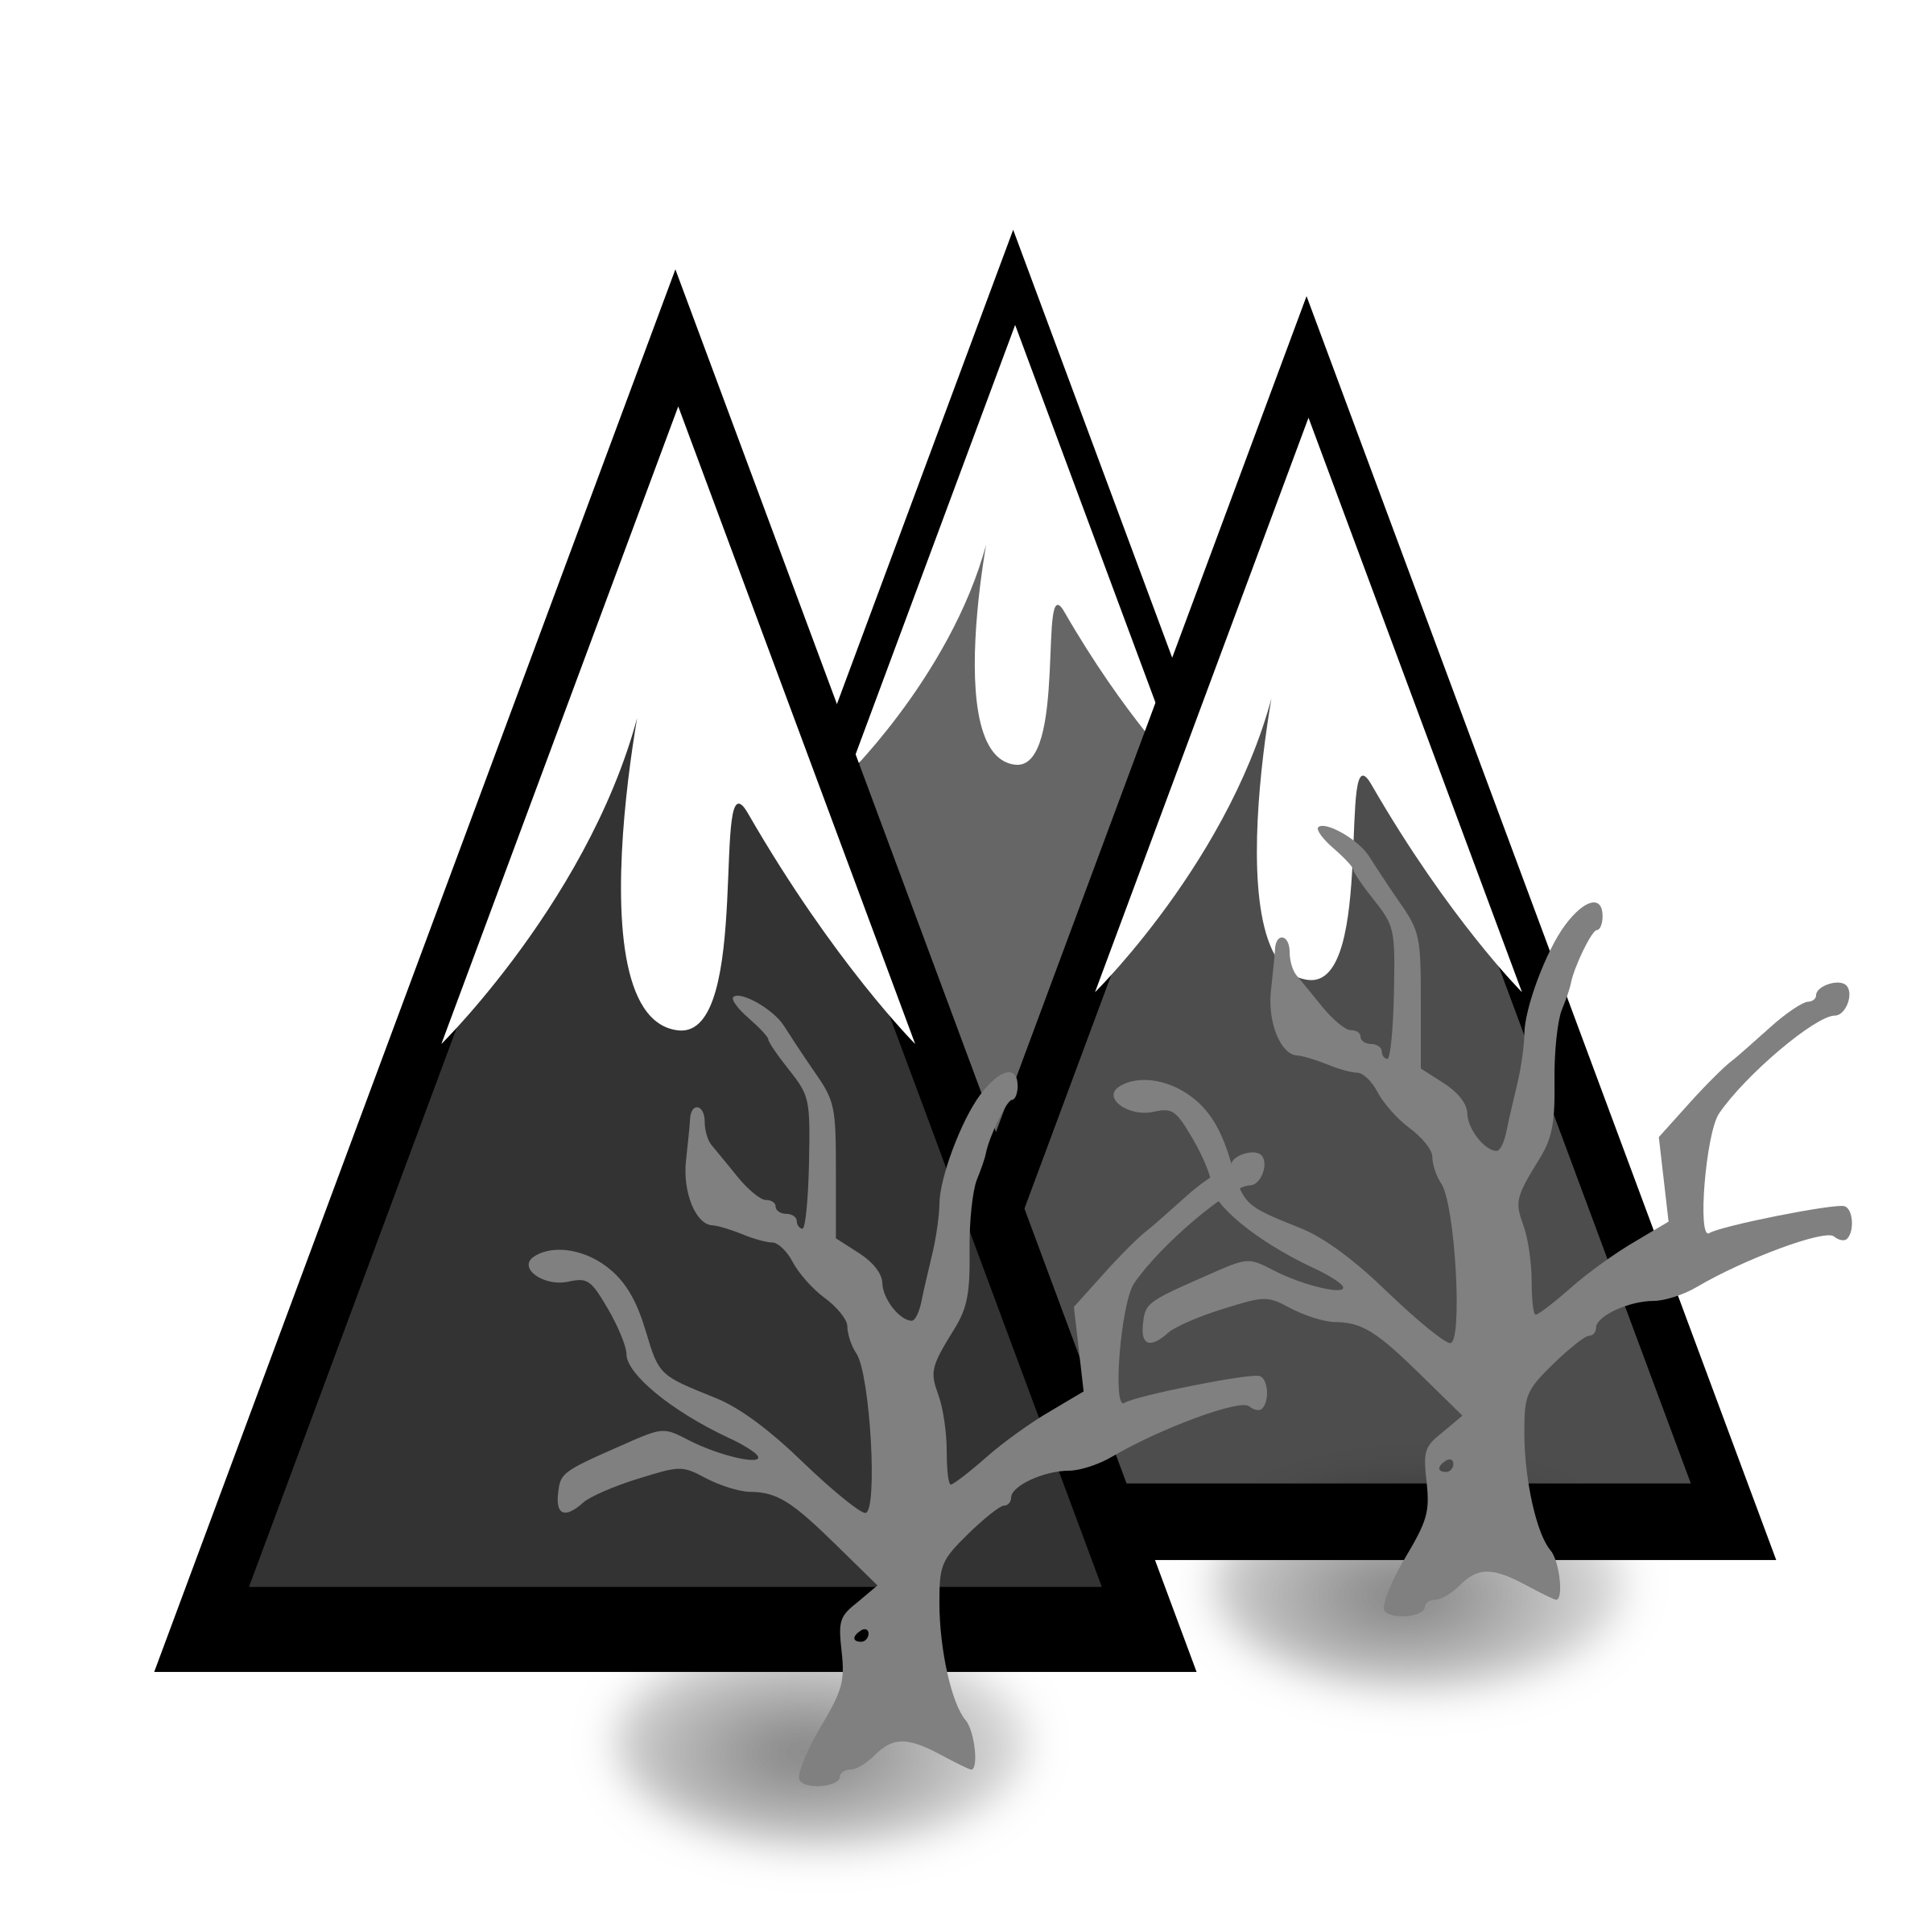 Forest clipart mountains. Dead big image png